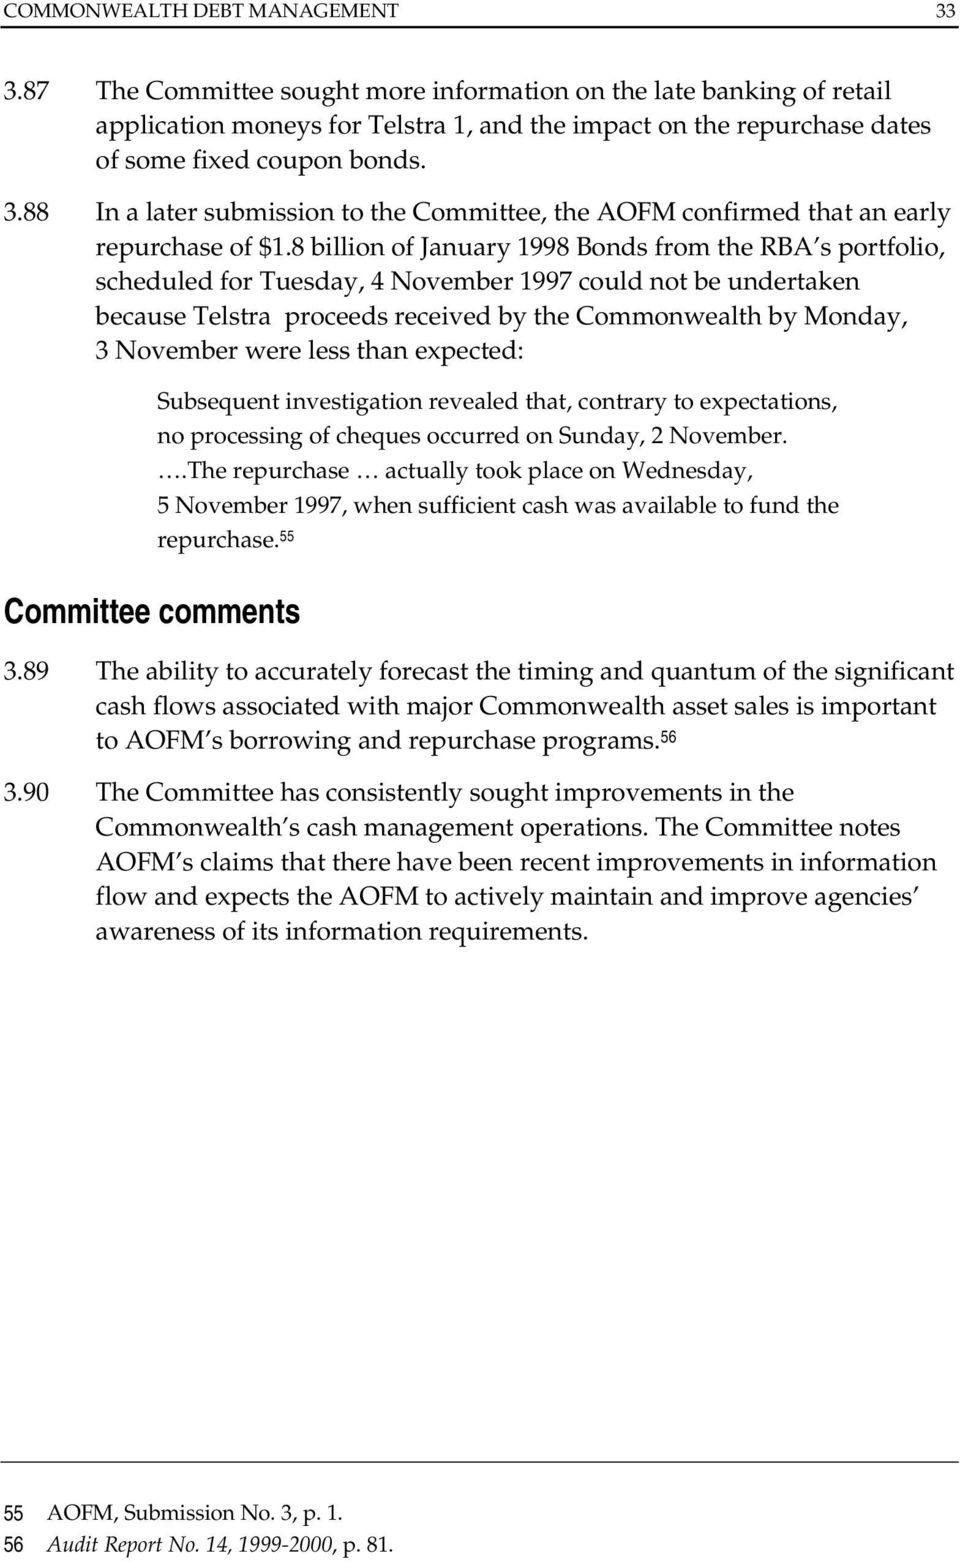 88 In a later submission to the Committee, the AOFM confirmed that an early repurchase of $1.